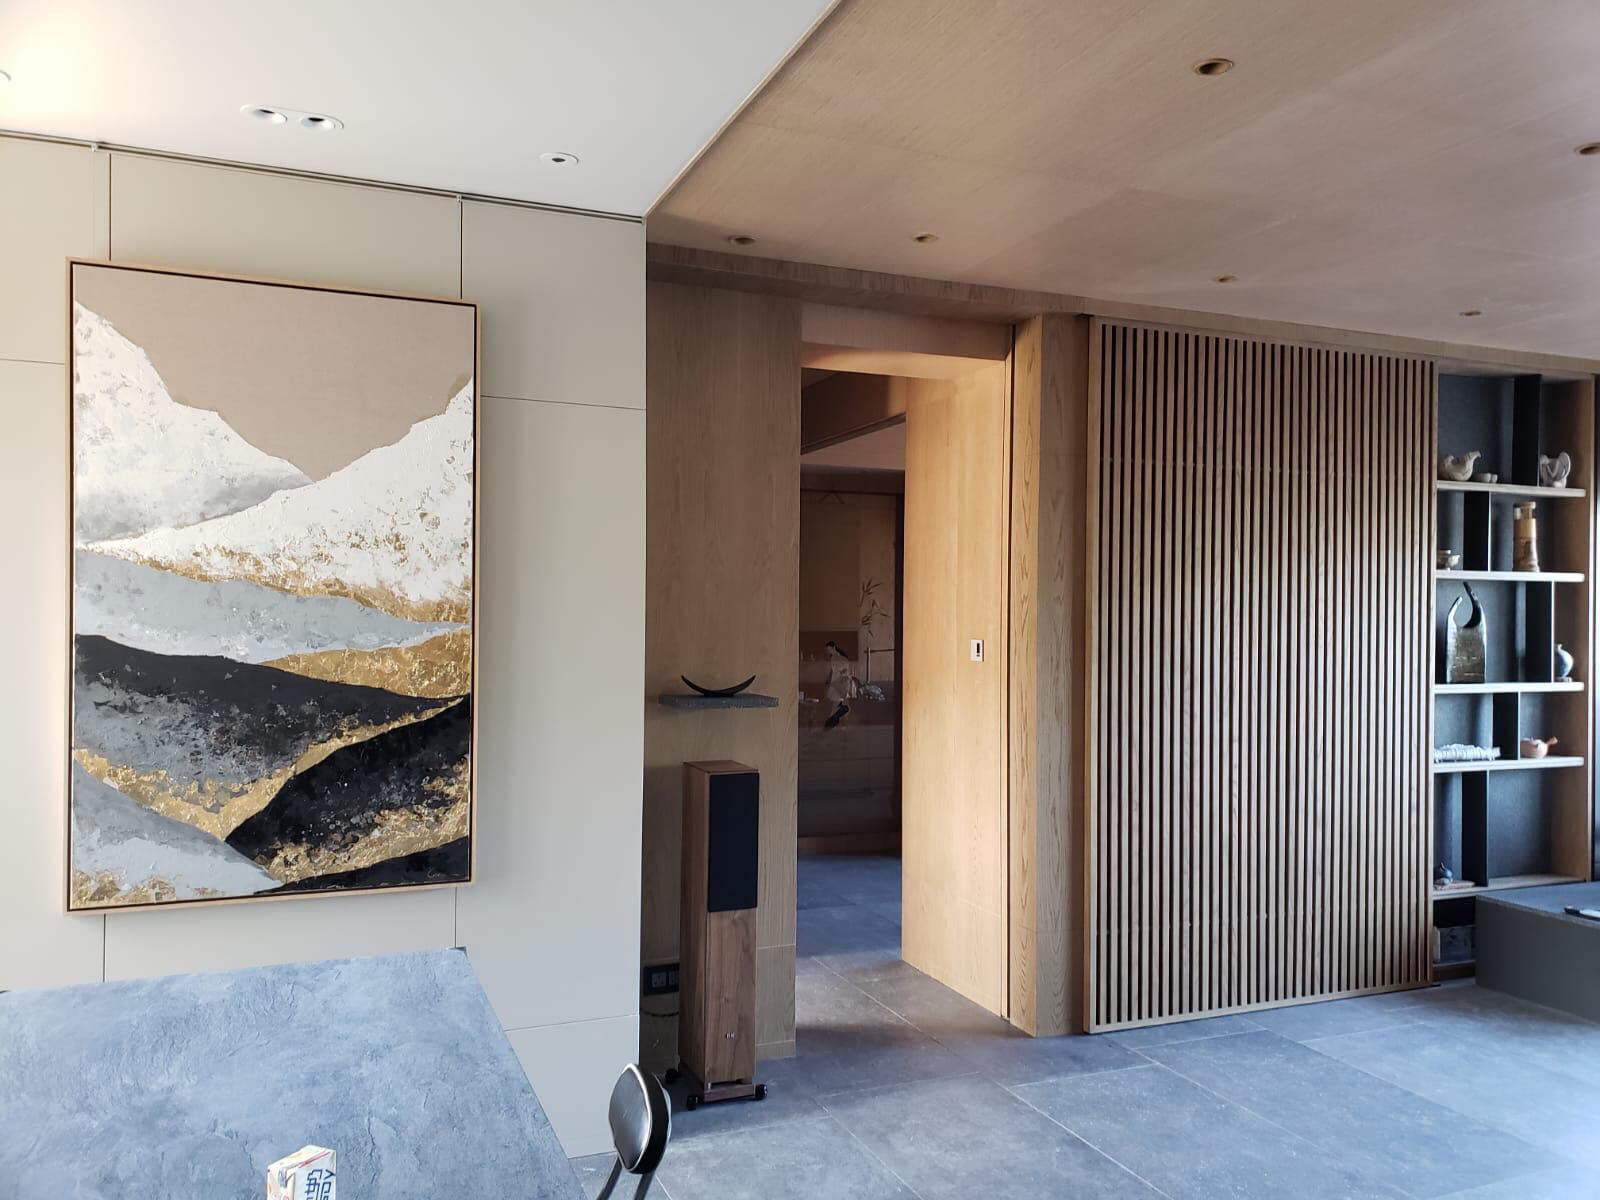 This commissioned painting, now installed in a new Hong Kong home, was based on  Looking West in Winter  by Chelsea Davine